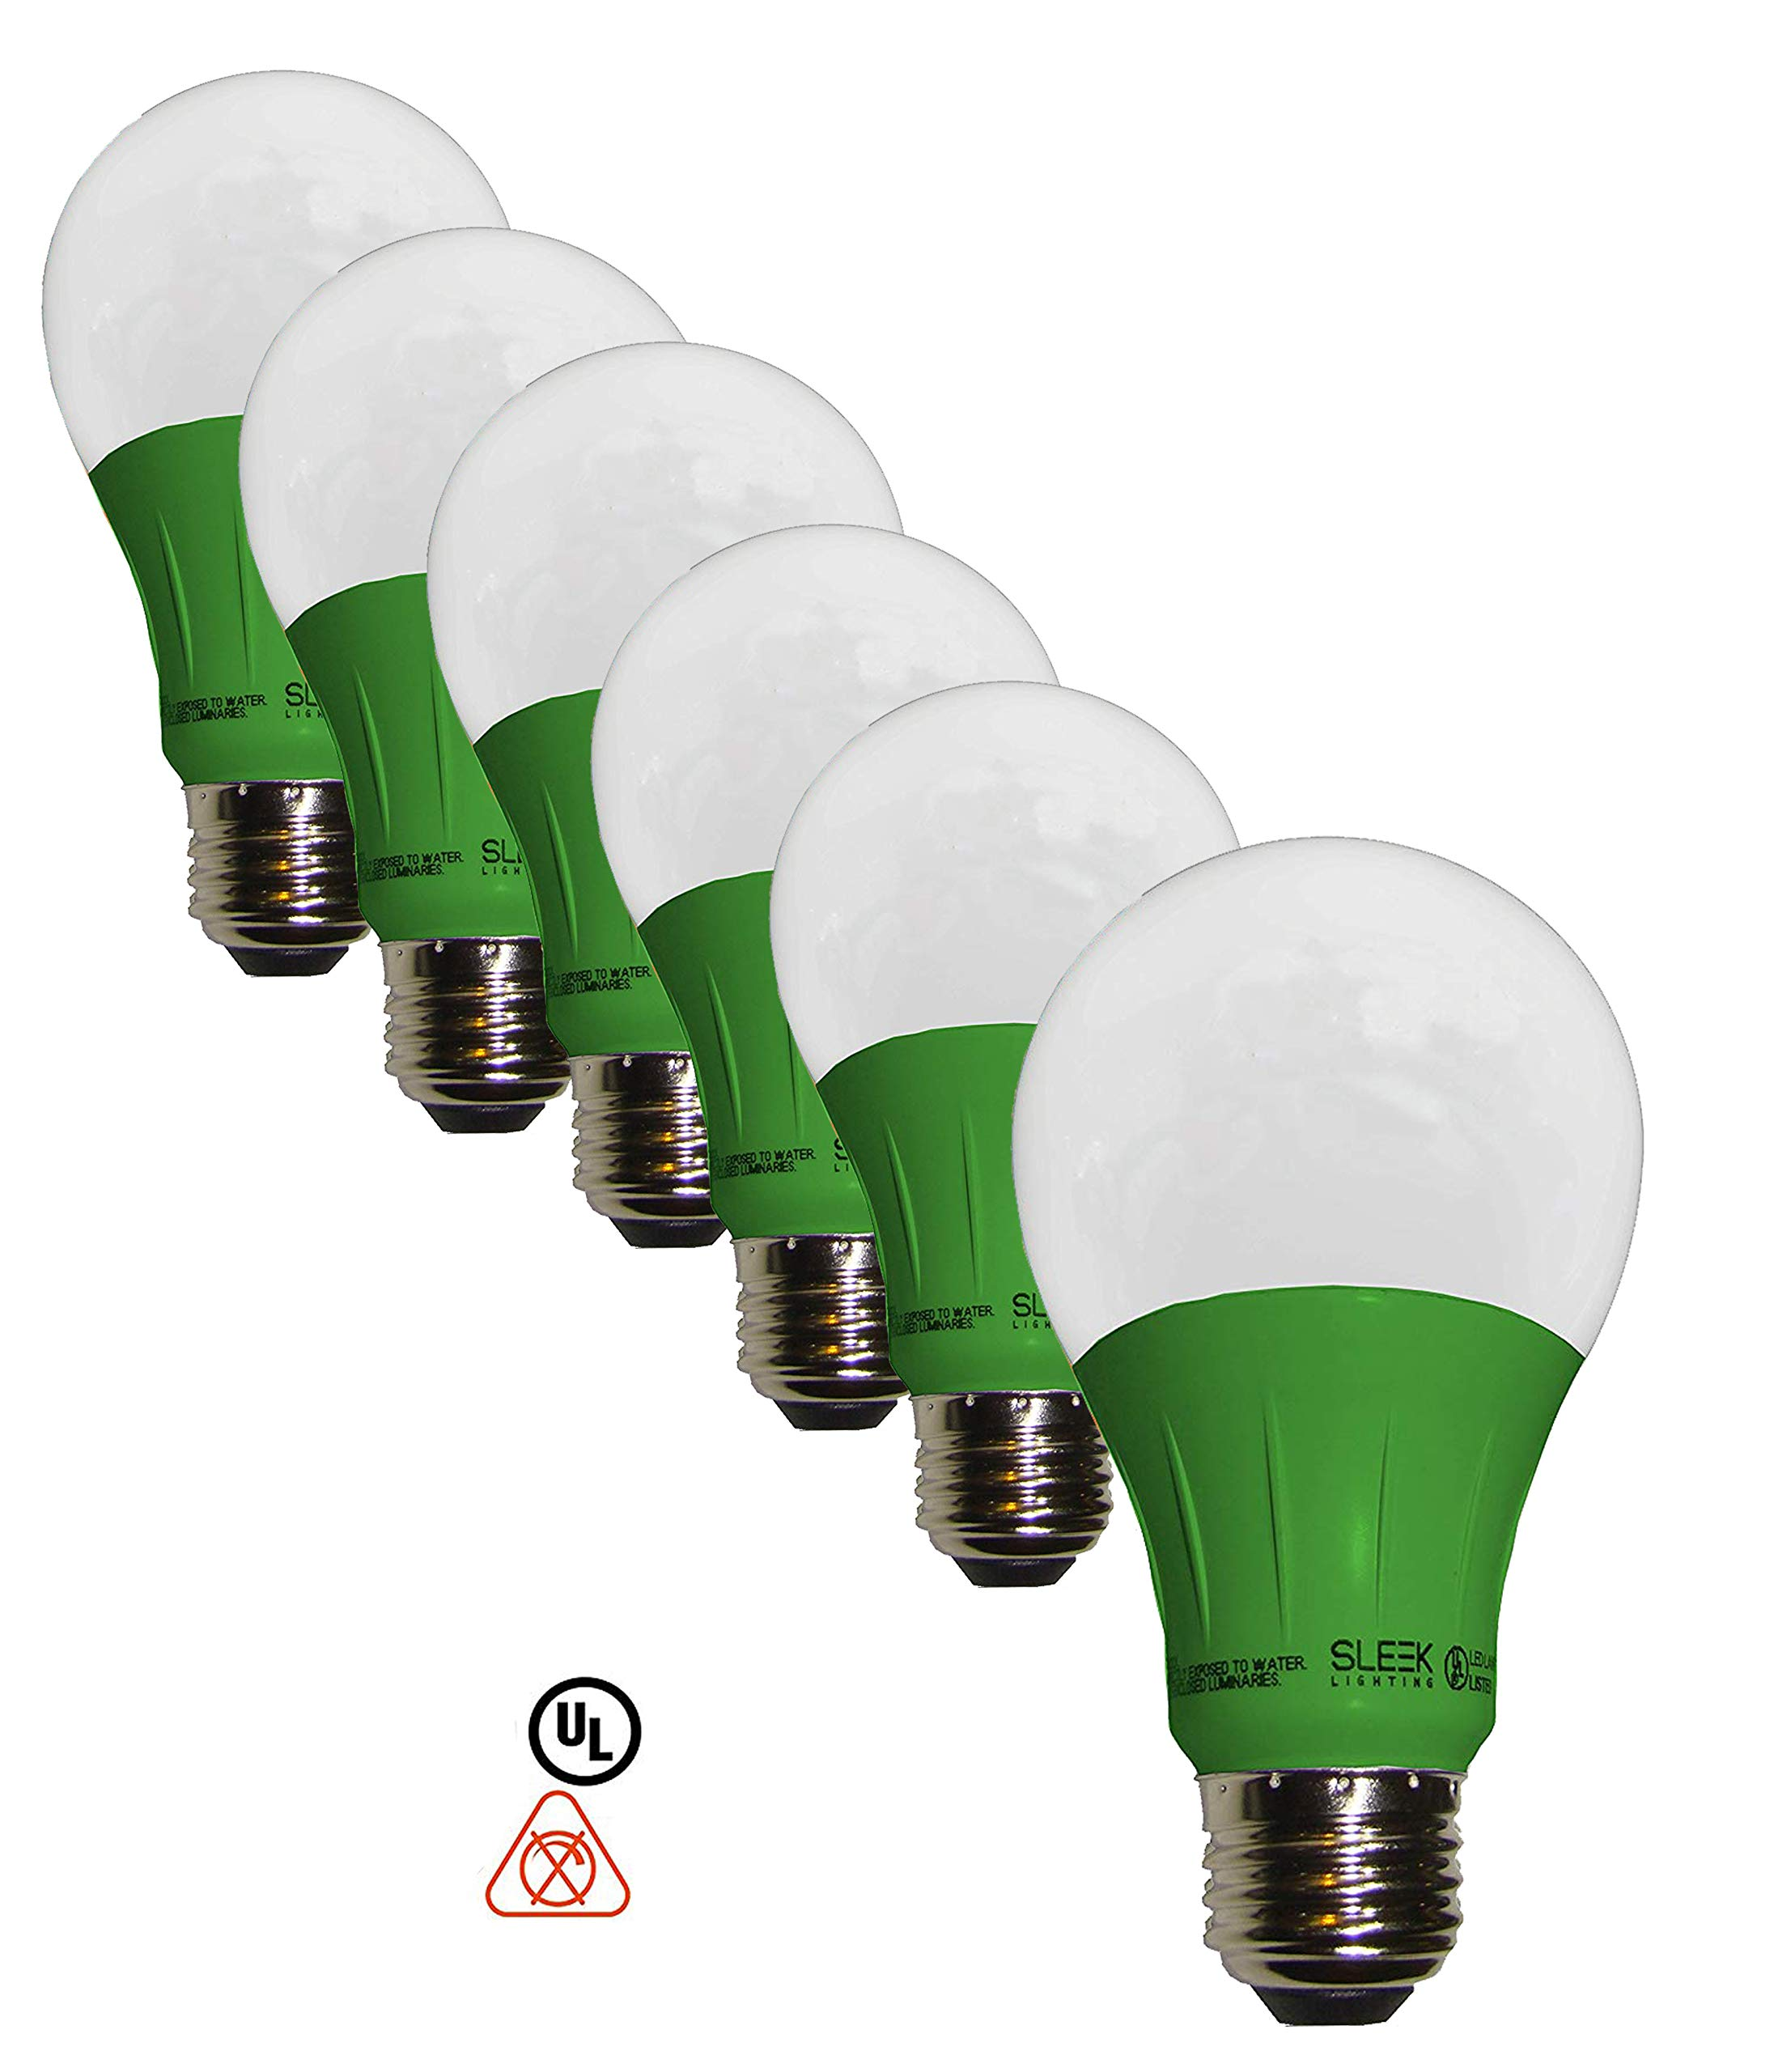 Sleeklighting LED A19 Green Light Bulb, 120 Volt - 3-Watt Energy Saving - Medium Base - UL-Listed LED Bulb - Lasts More Than 20,000 Hours 6pack by SleekLighting